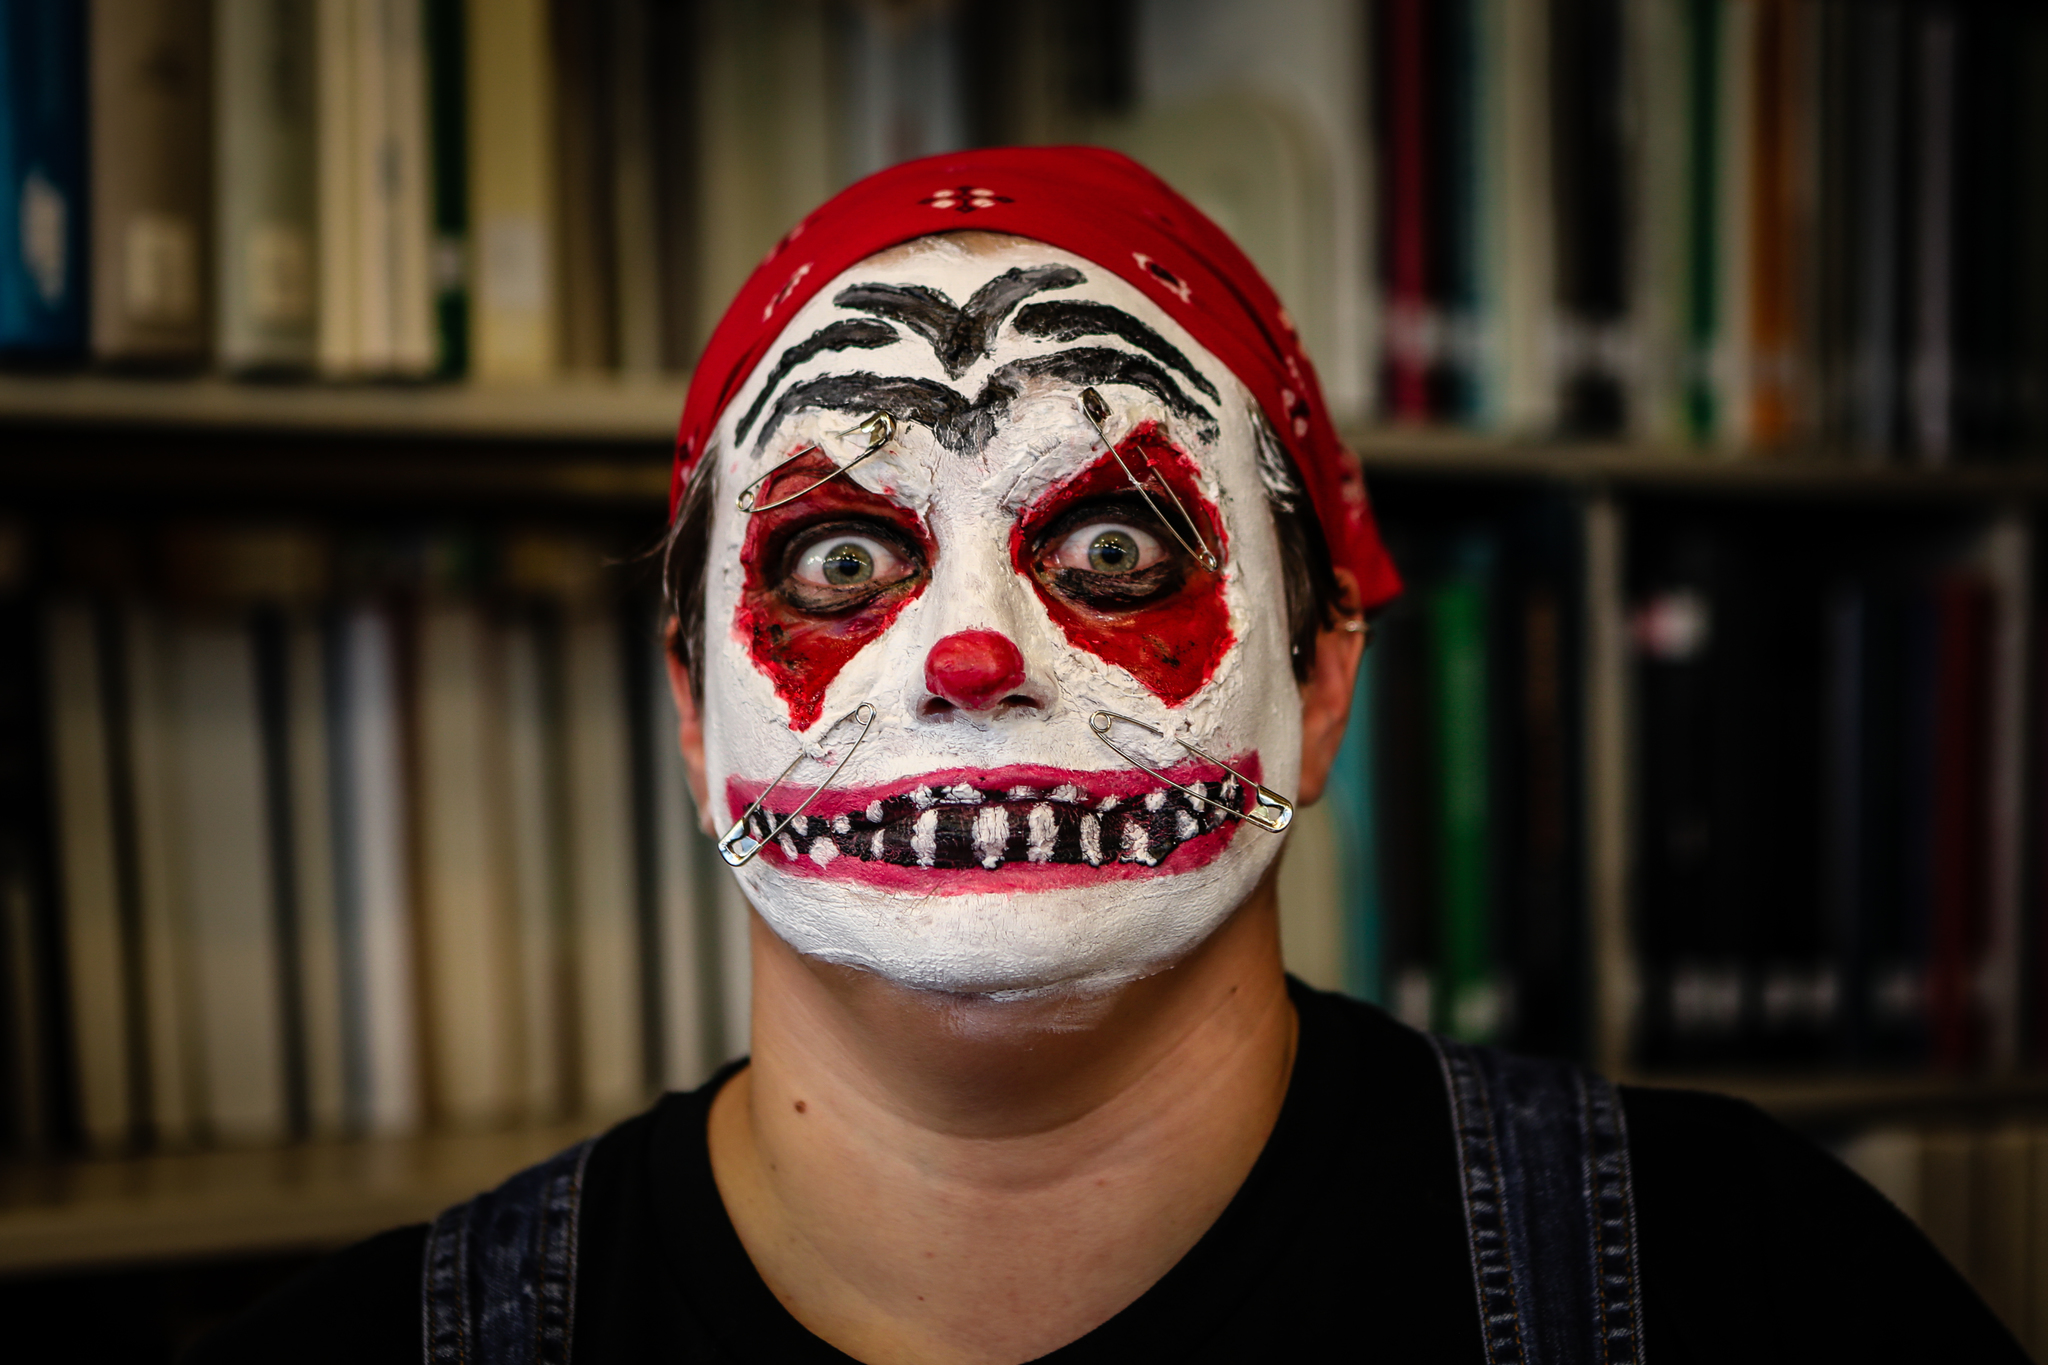 Haunted library clown actor